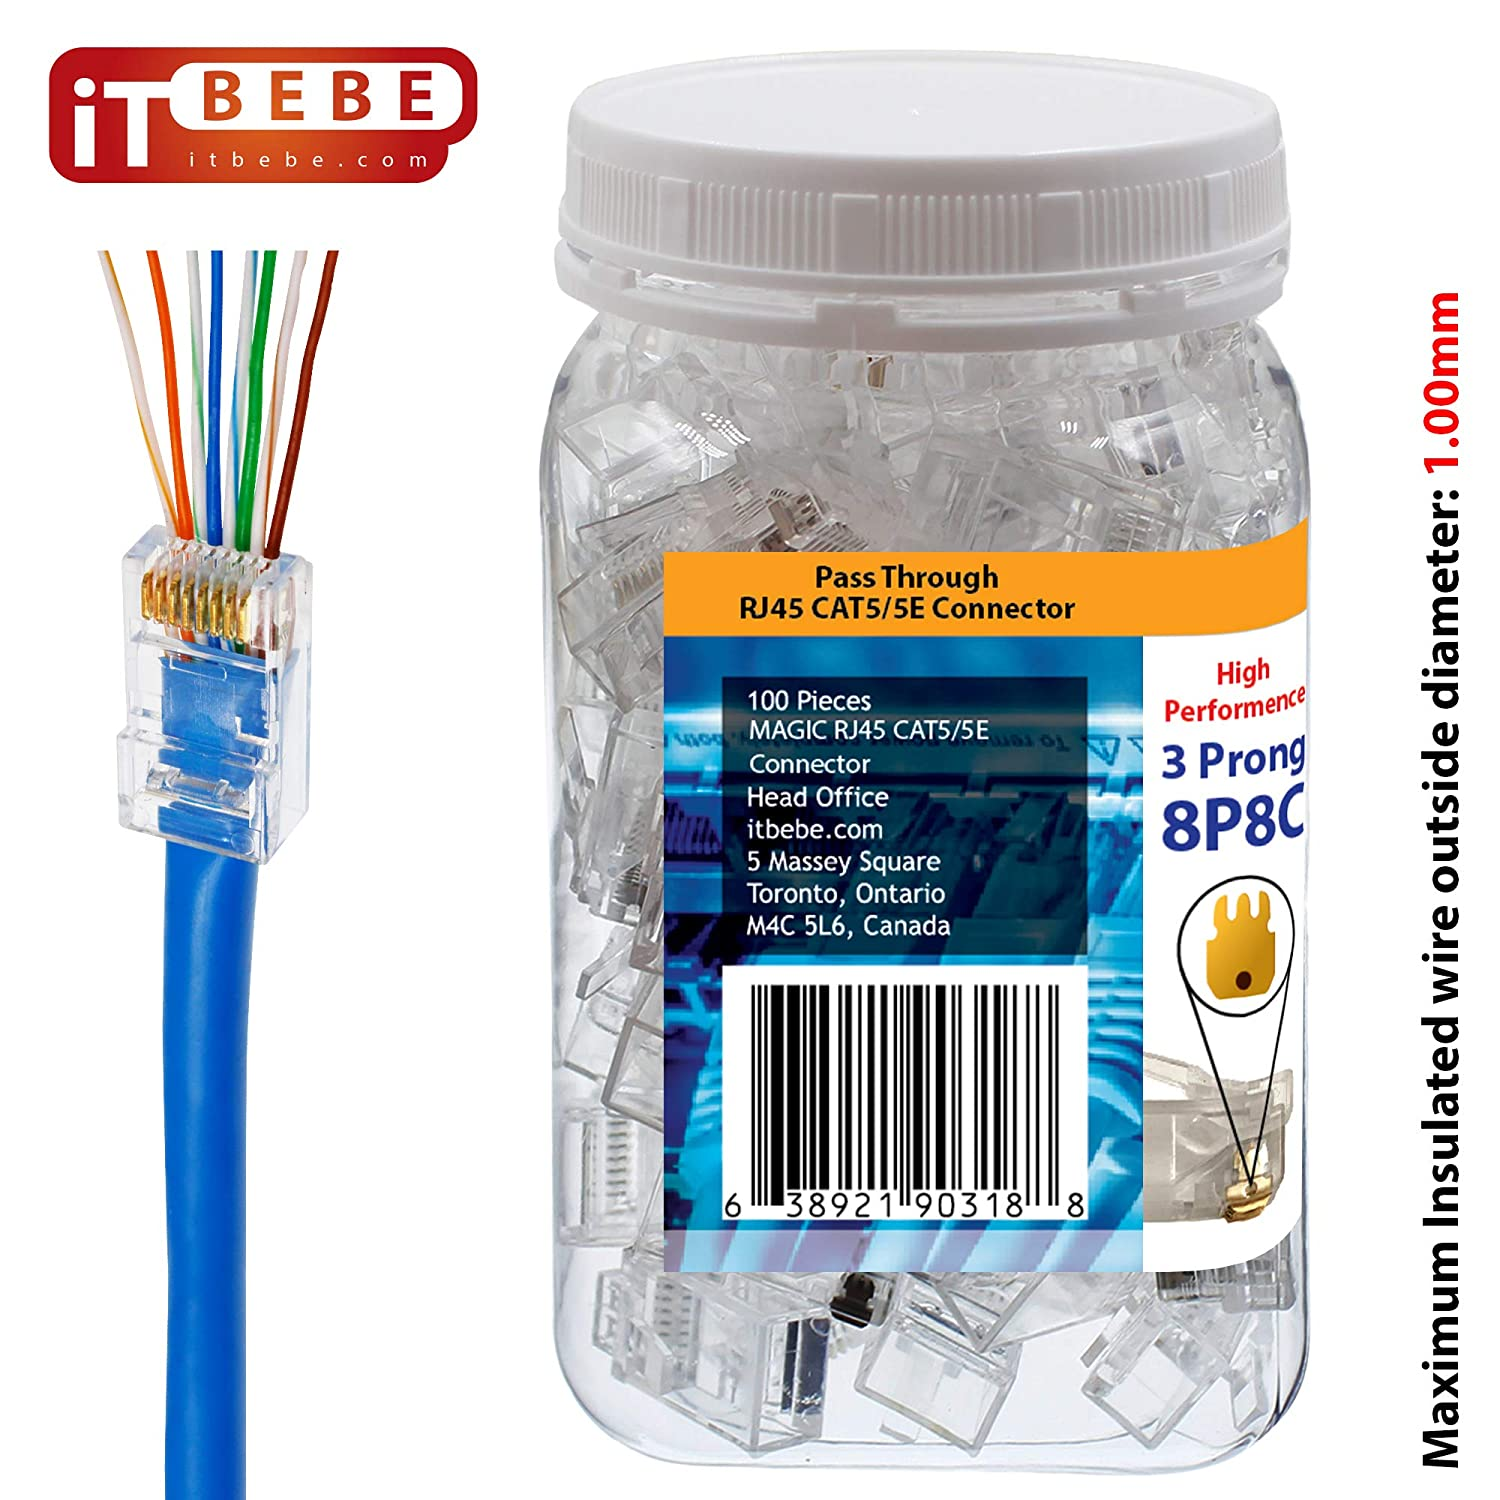 Gold Plated EZ RJ45 Cat5e Connector by itbebe Connector Cat5 cat5e 100 Pieces